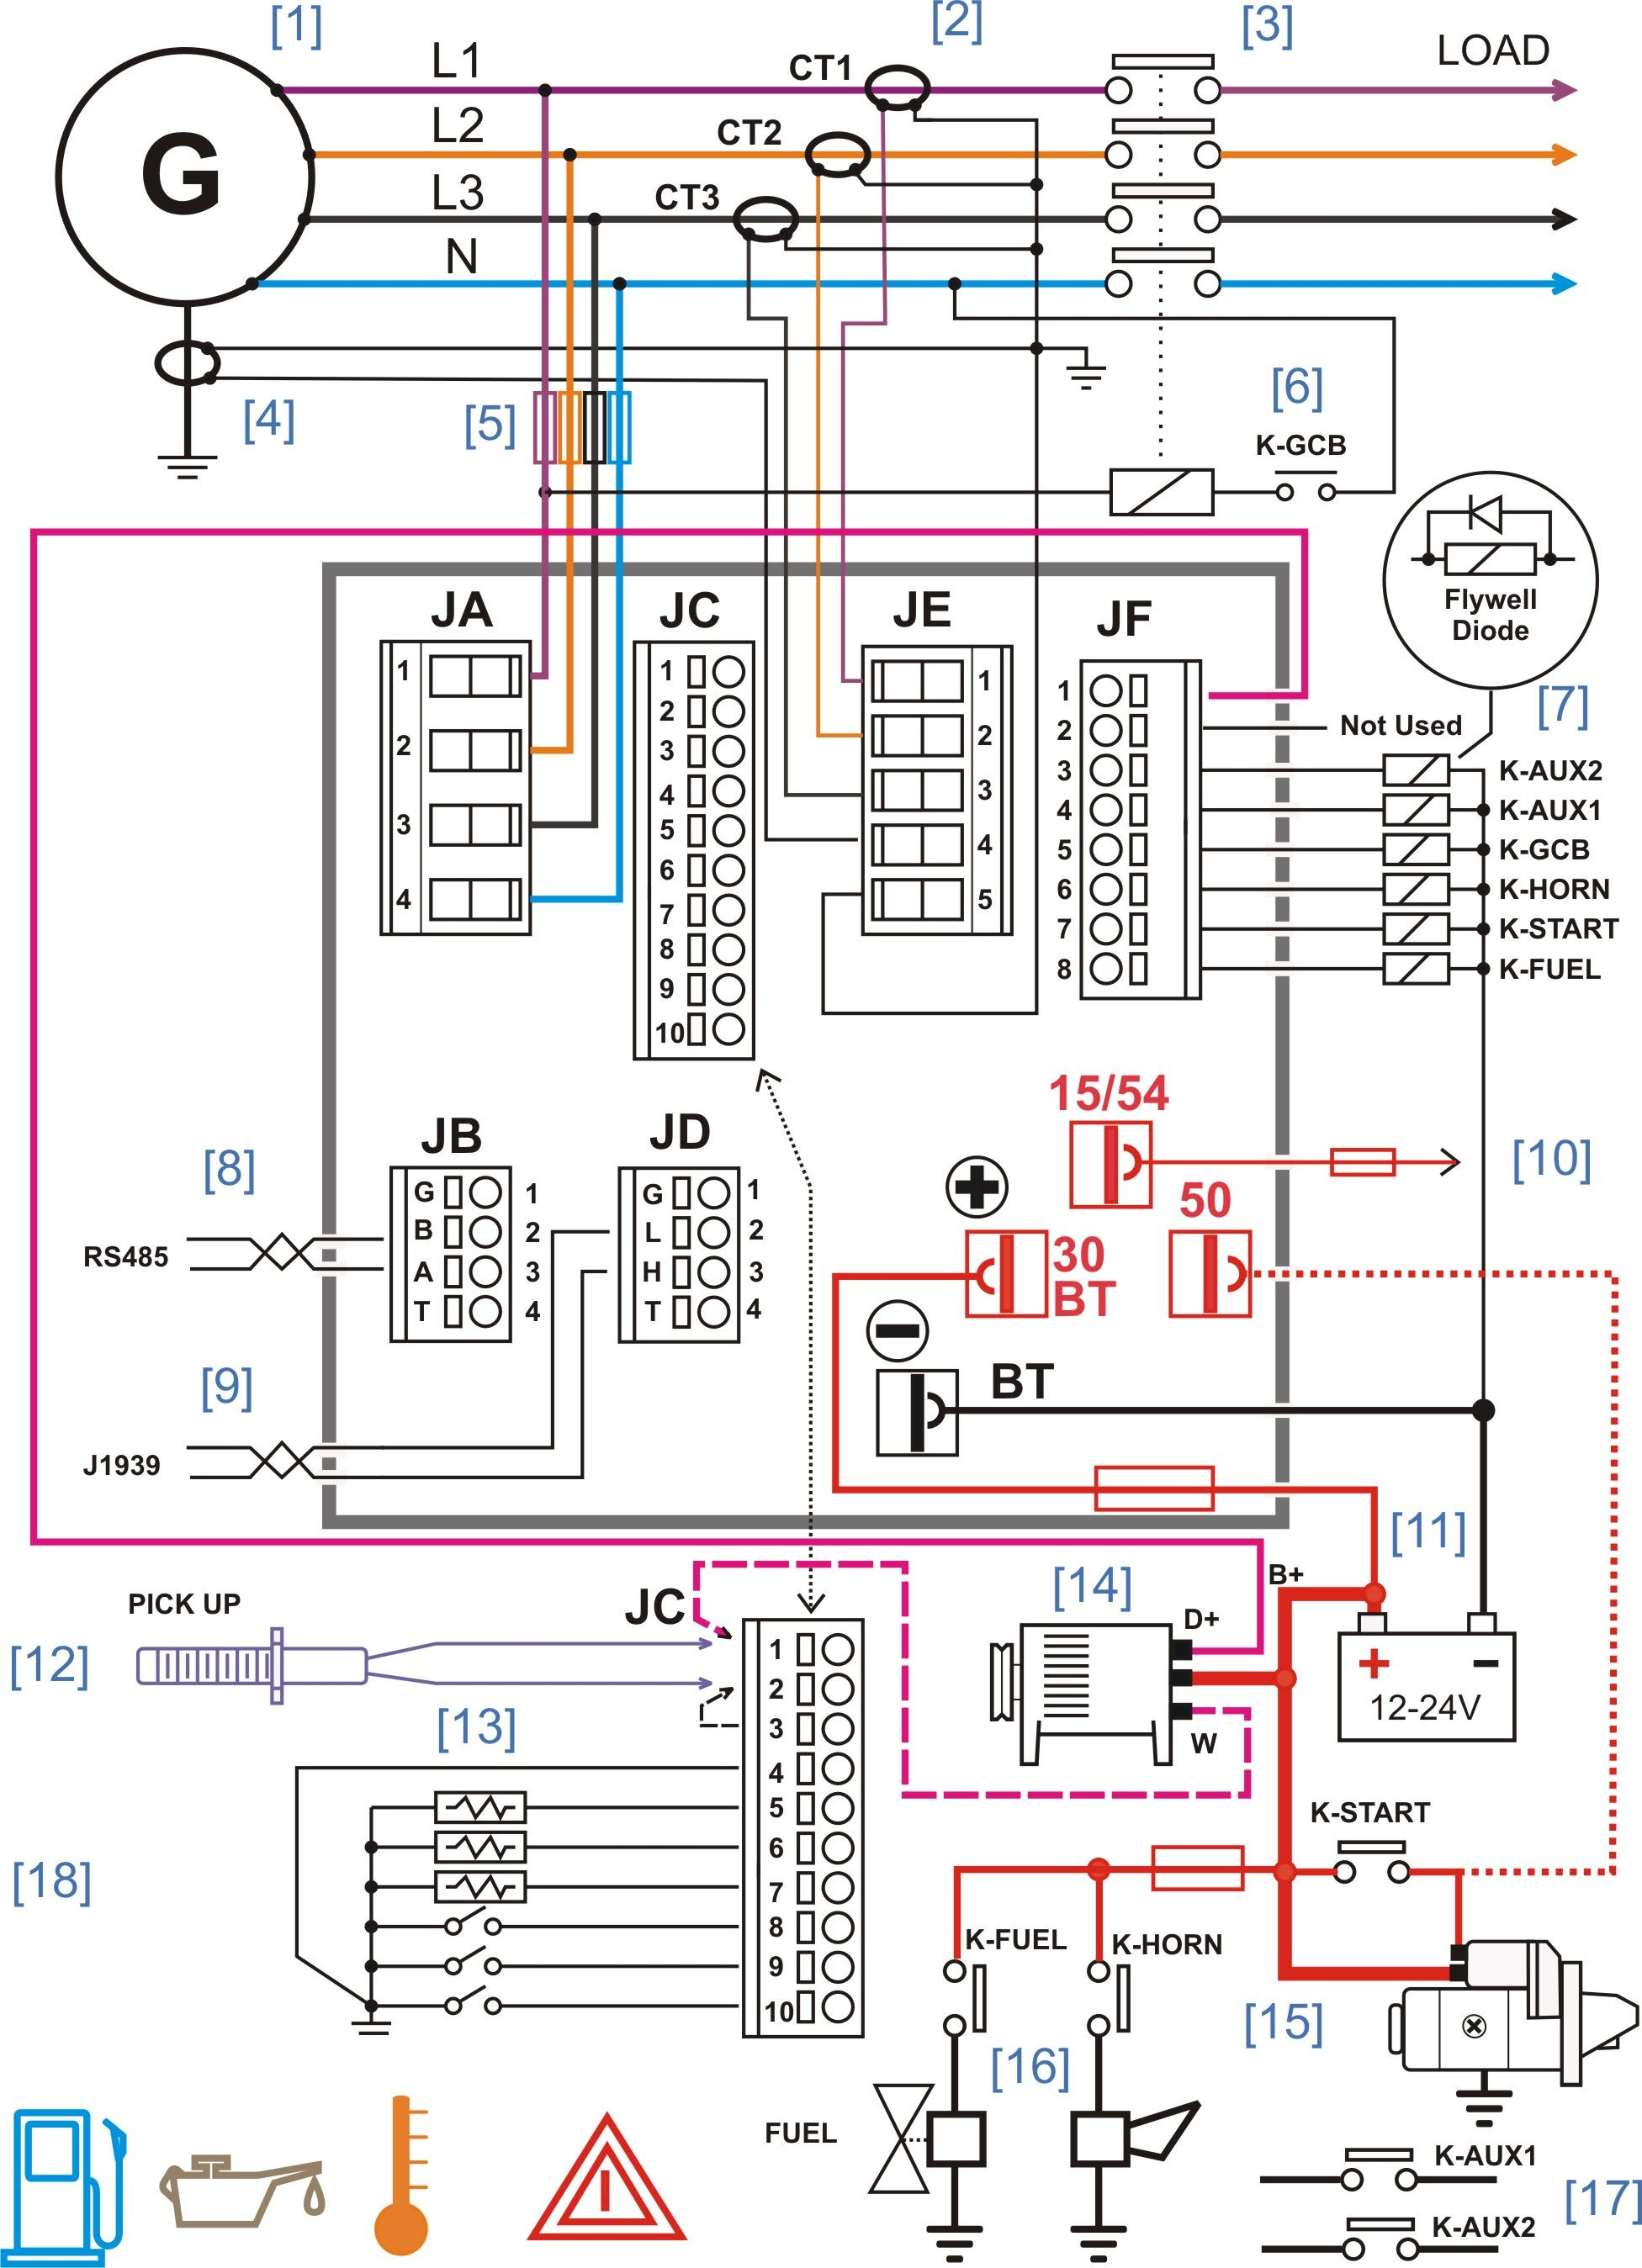 e32695bfa9986573569381a039ba42a6 diesel generator control panel wiring diagram gr pinterest generator wiring diagrams at alyssarenee.co